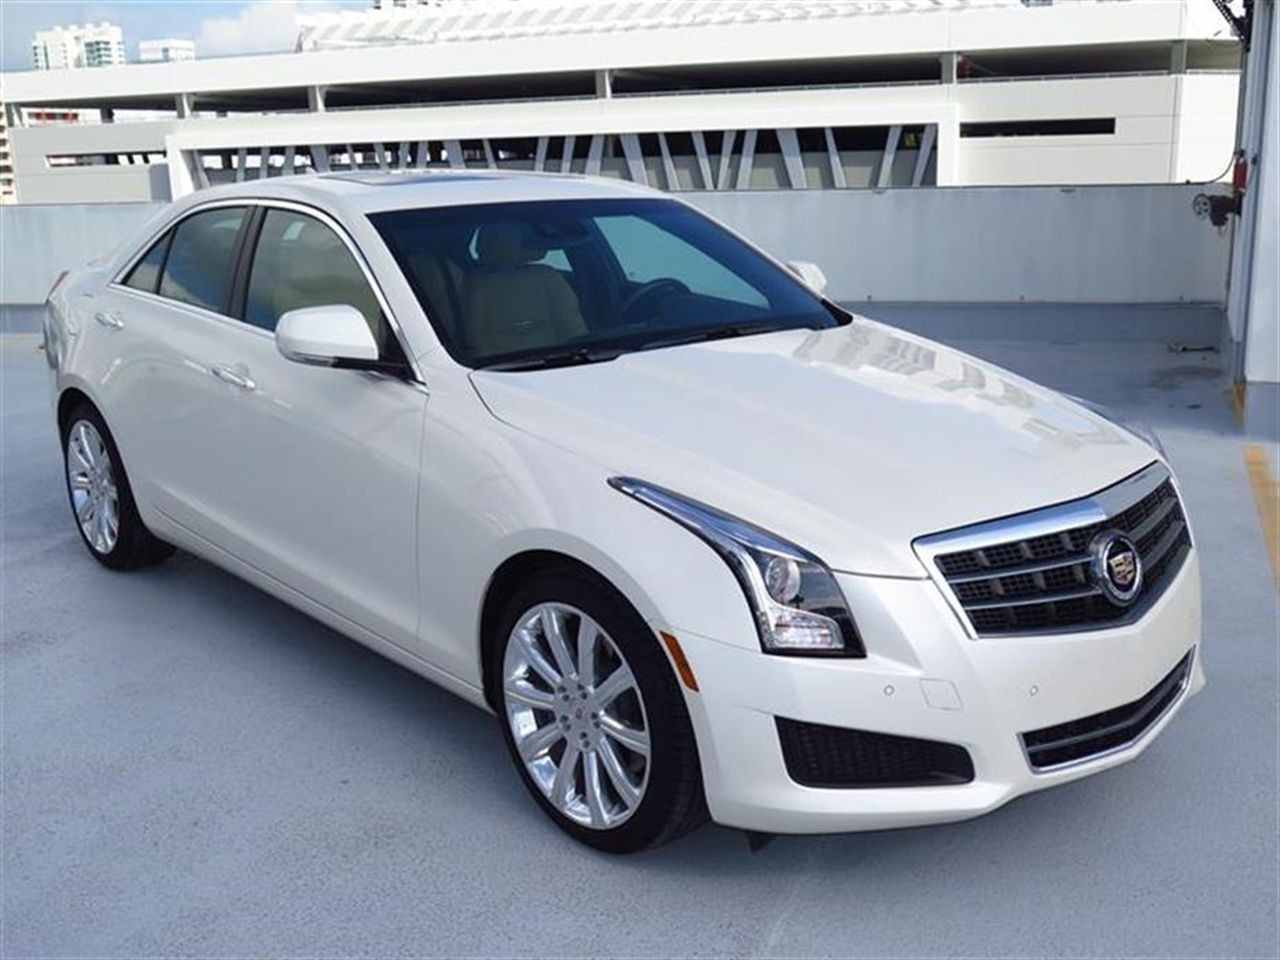 2014 CADILLAC ATS 4dr Sdn 20L Luxury RWD 10041 miles Adaptive Remote Start Not available with M